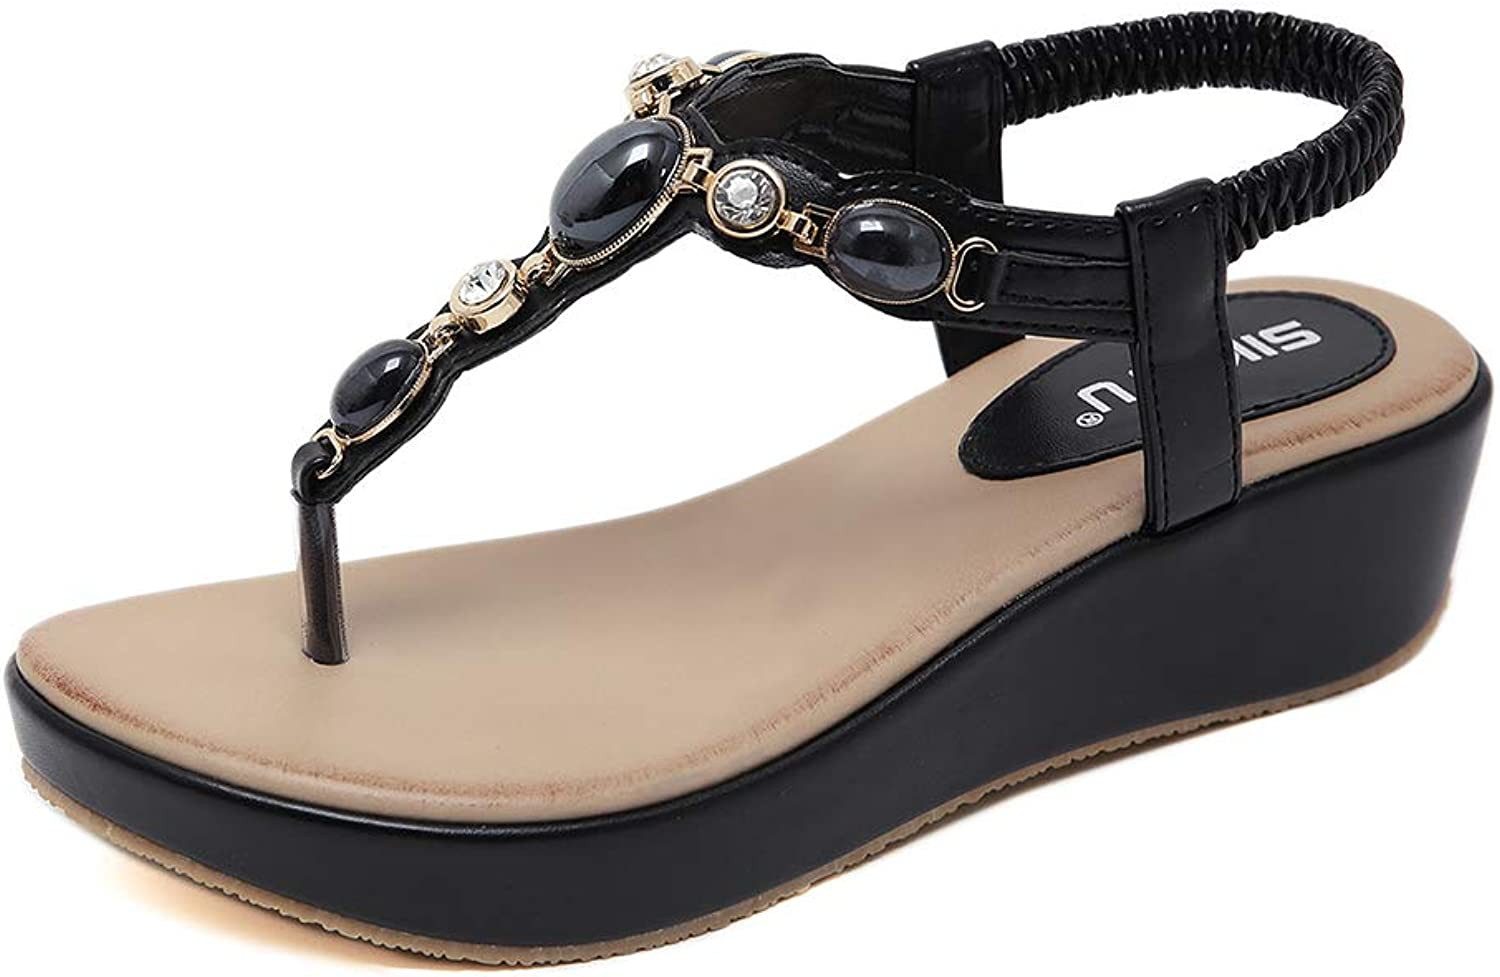 Navoku Womens Leather Jeweled Skidproof Pearls Beach Sandles Thong Sandals